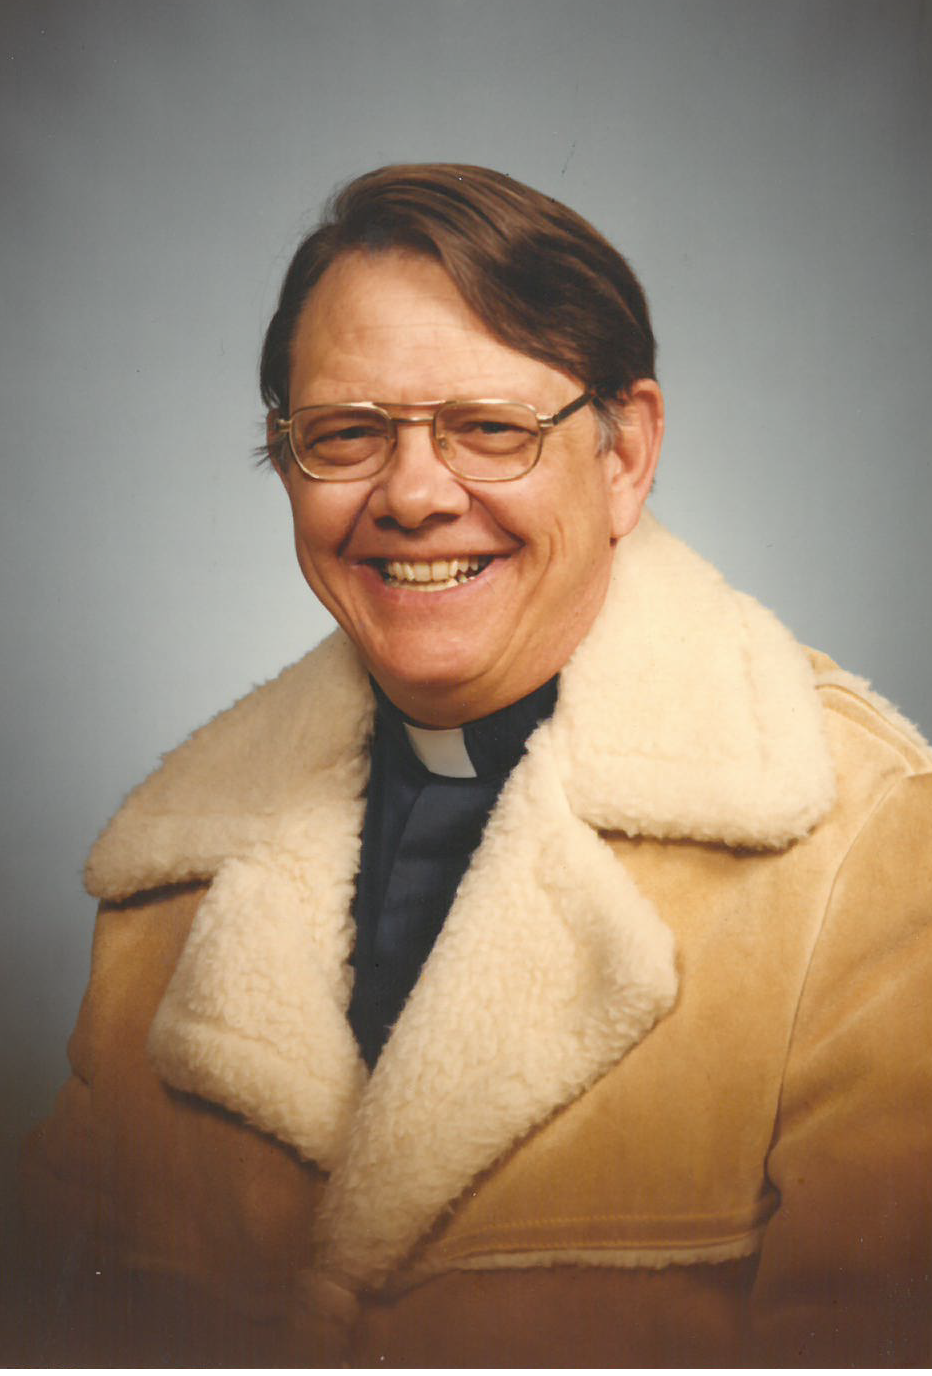 The Reverend Allen P. Price, 1st Vicar of St. Stephen's - March 1960-April 1966